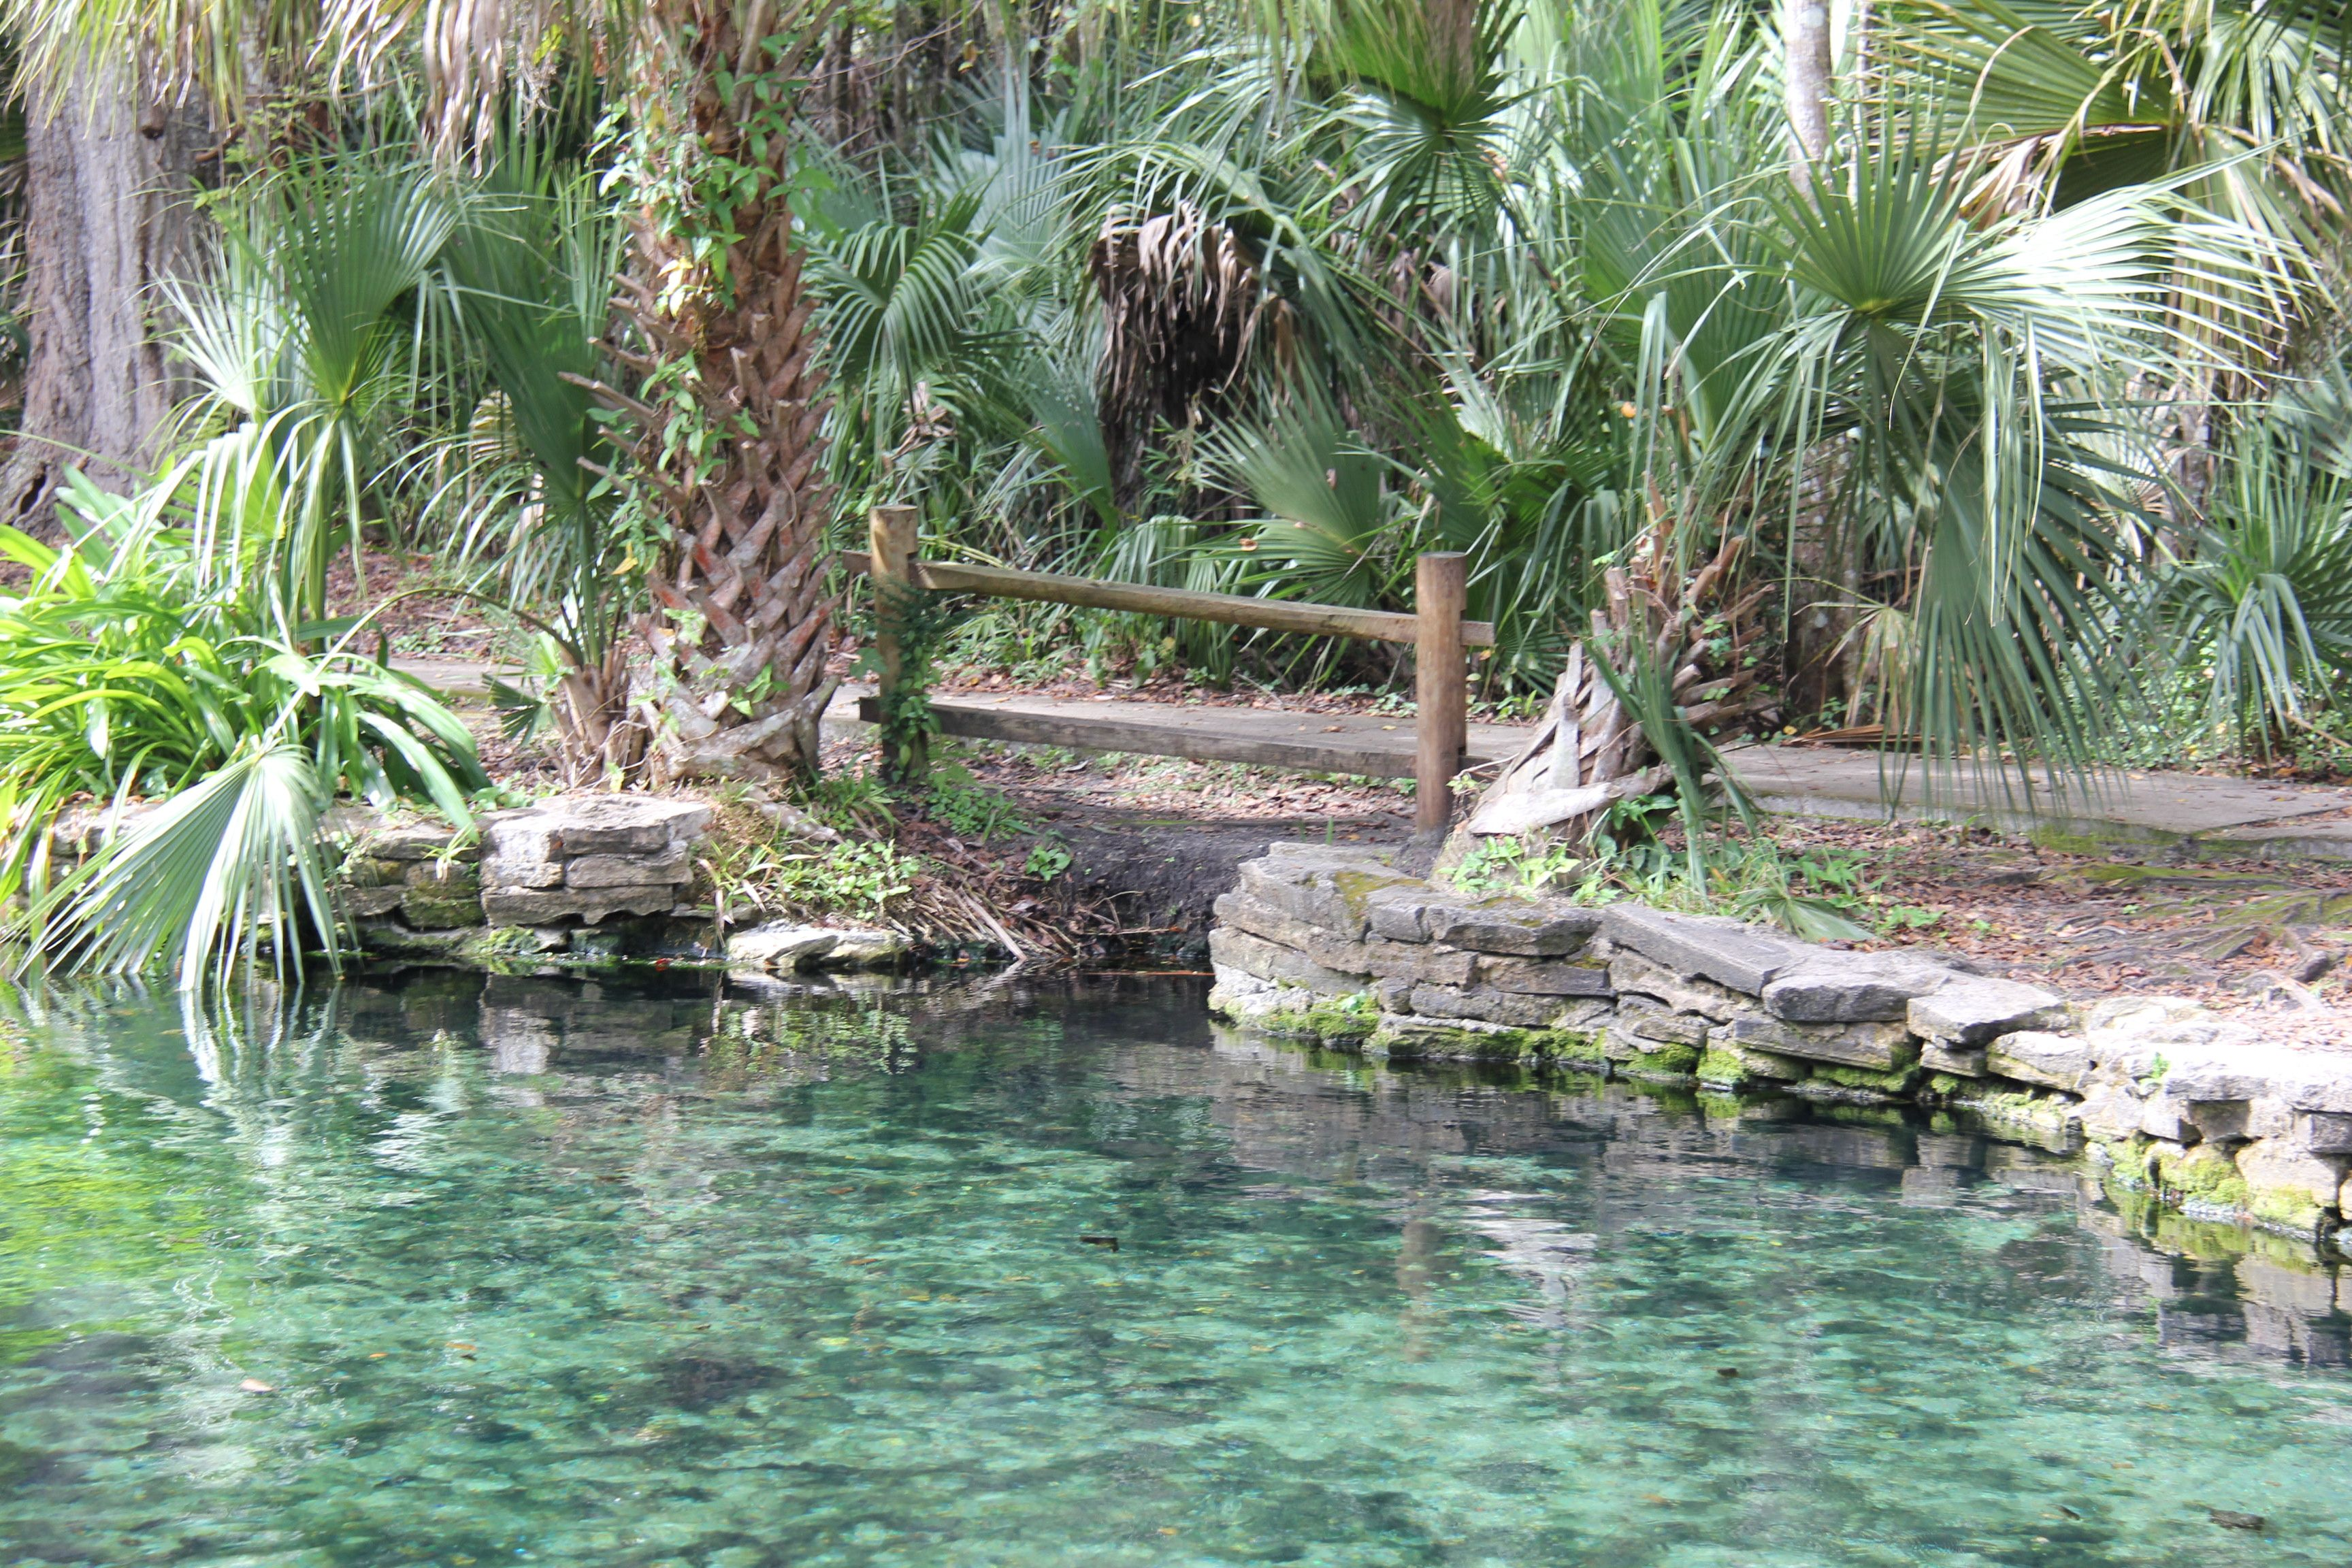 Wekiwa Springs' turquoise waters are beautiful and refreshing.